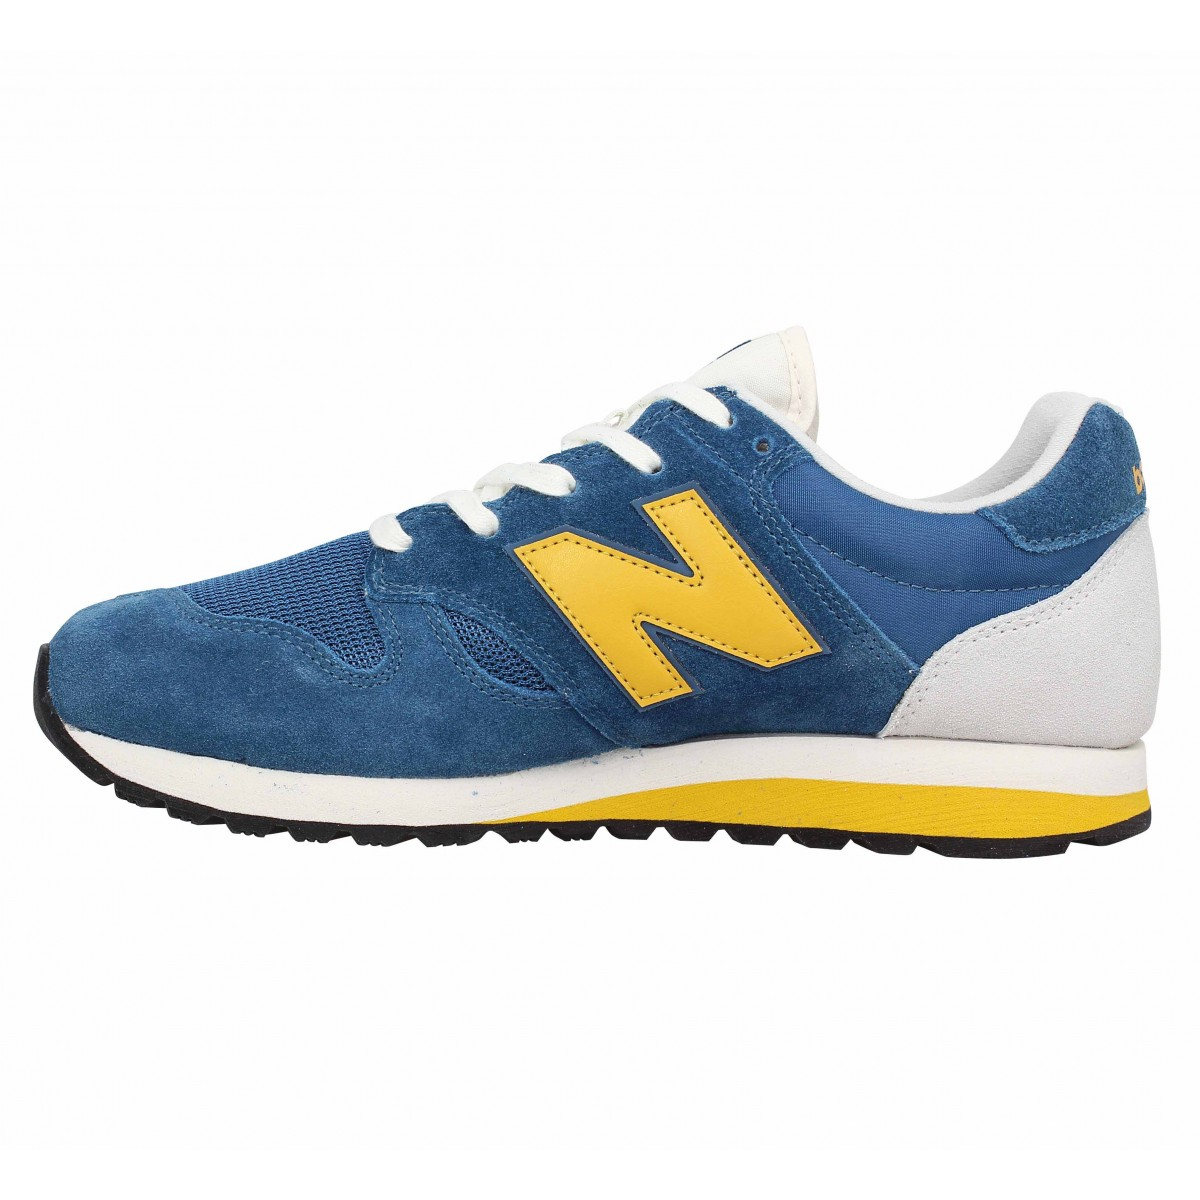 New balance 520 velours toile homme bleu homme | Fanny chaussures